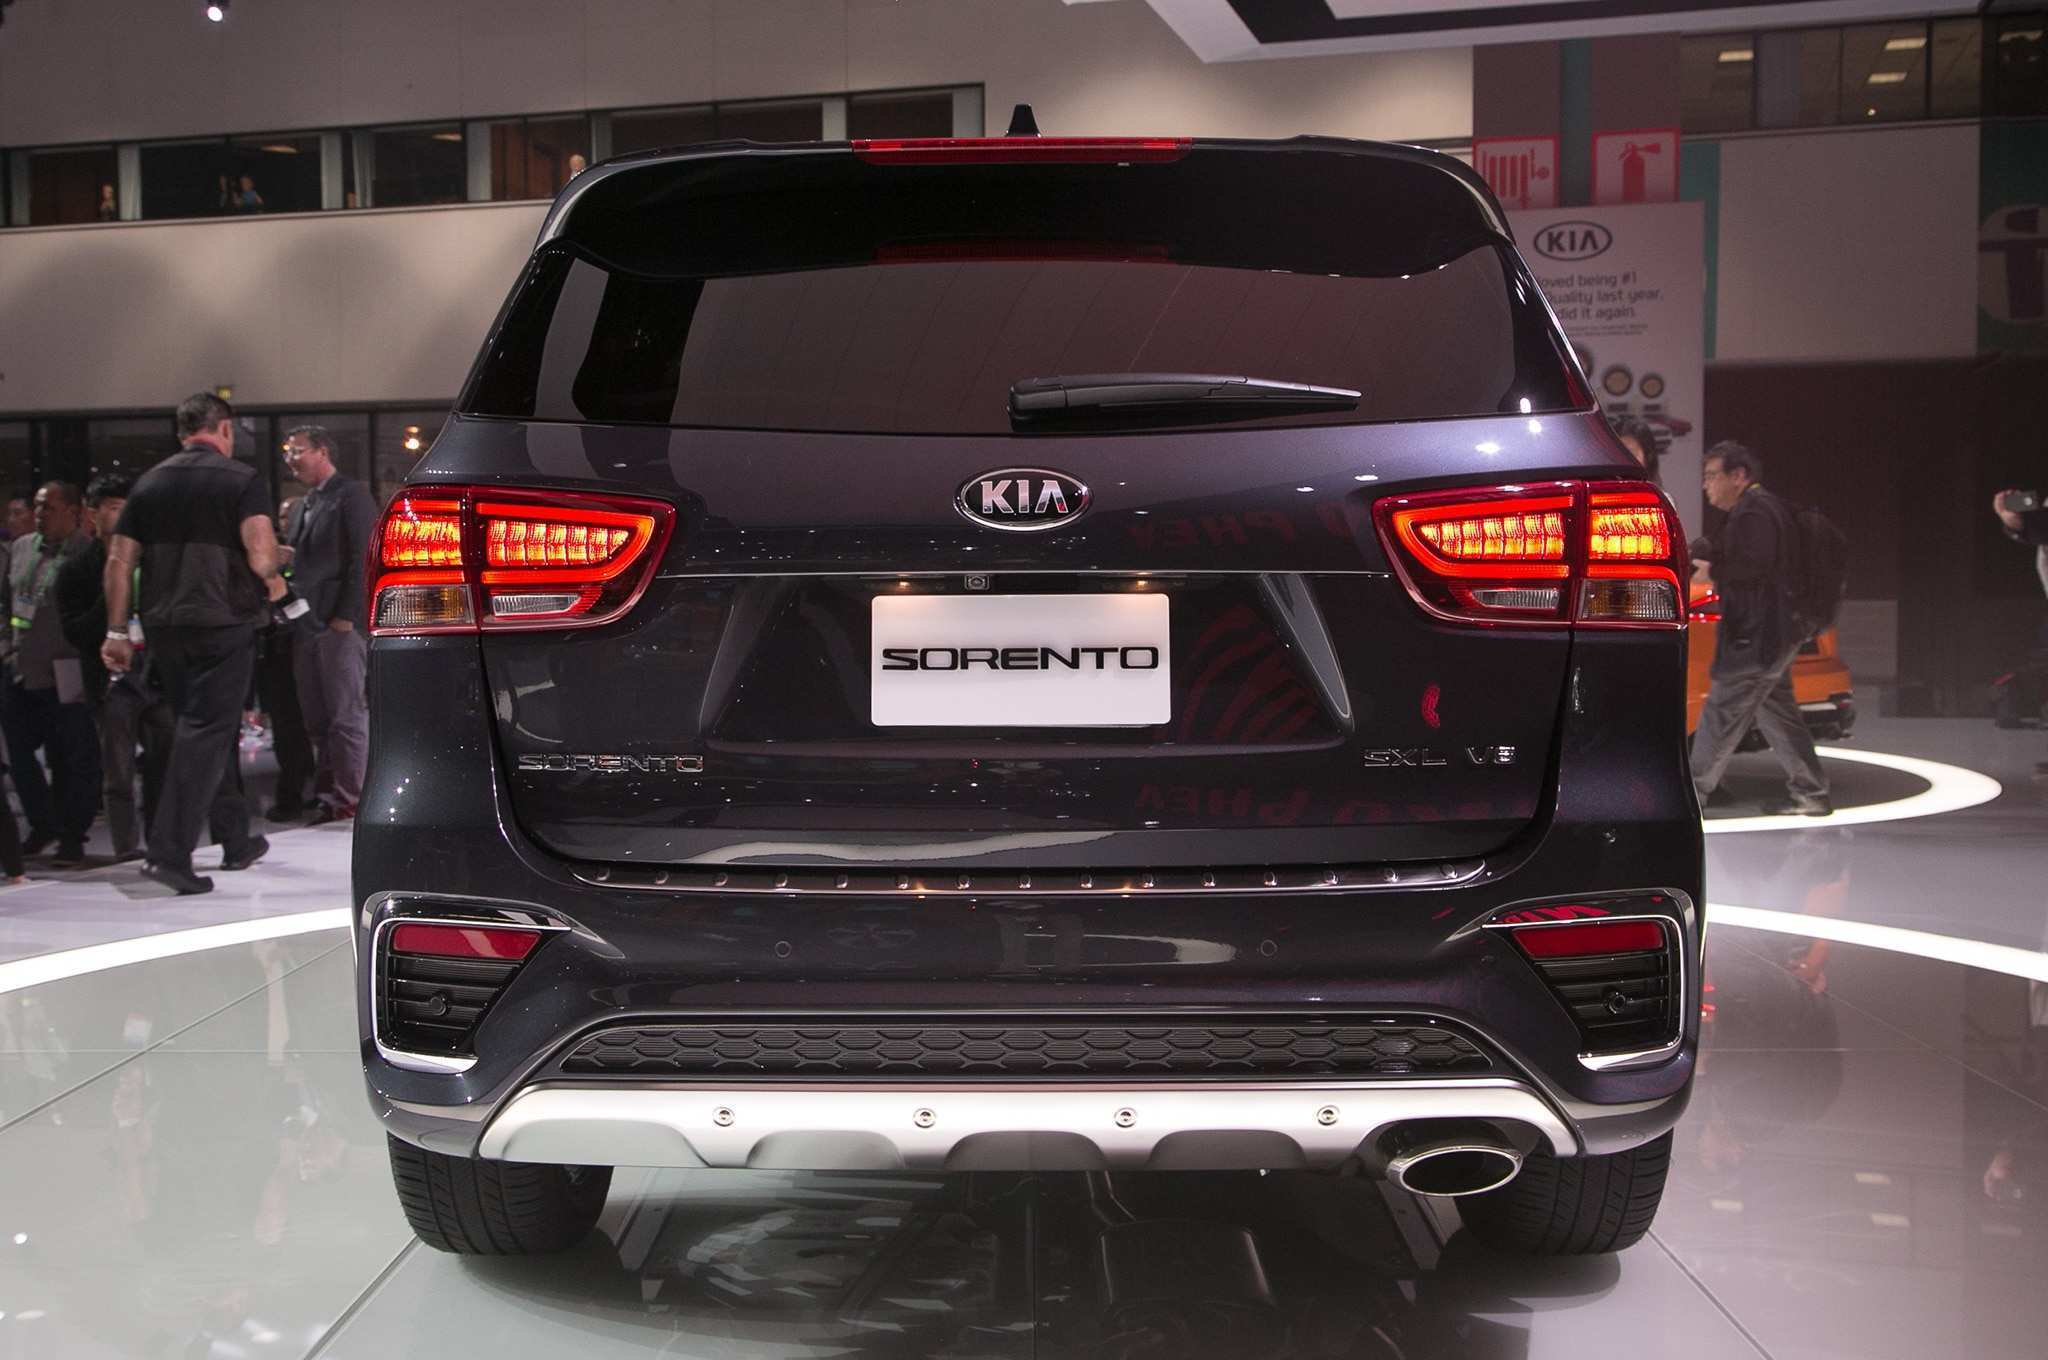 76 Best Review 2019 Kia Mohave Prices for 2019 Kia Mohave